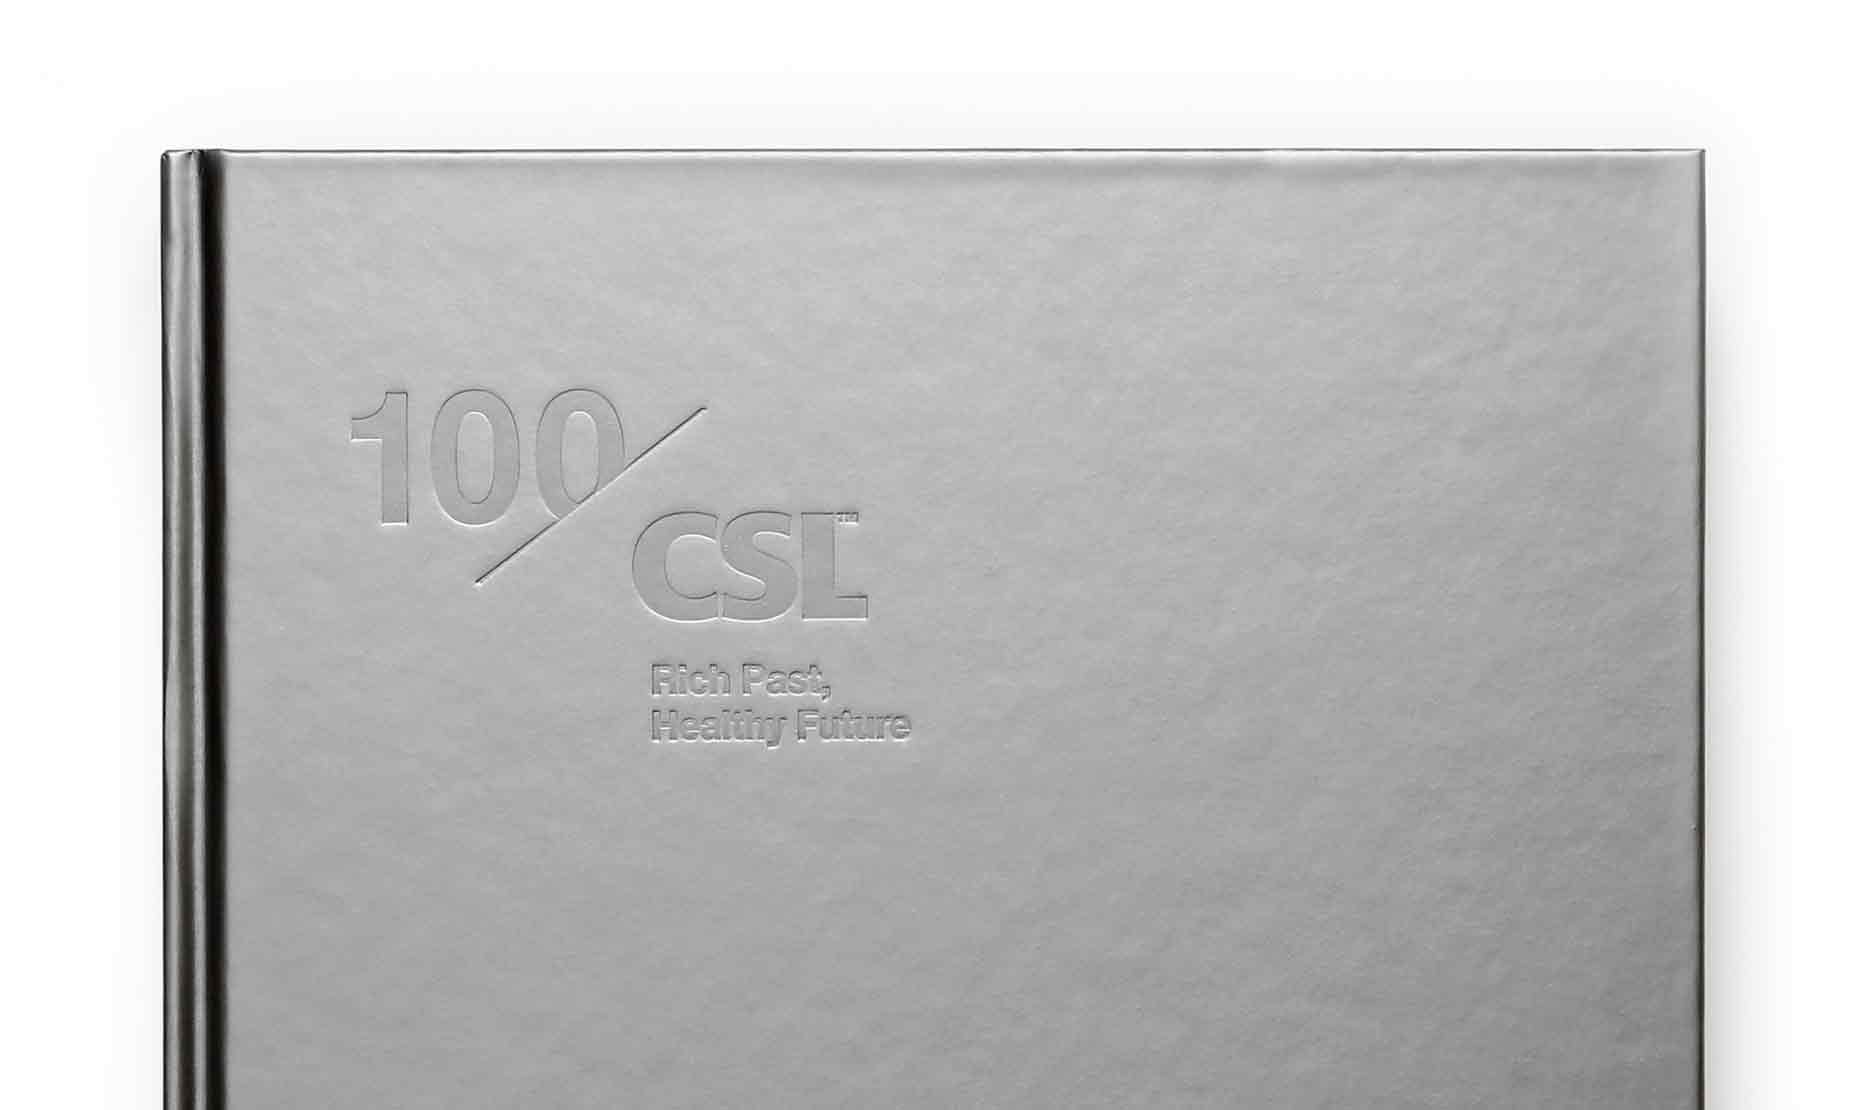 csl-book-cover-grey-cropped